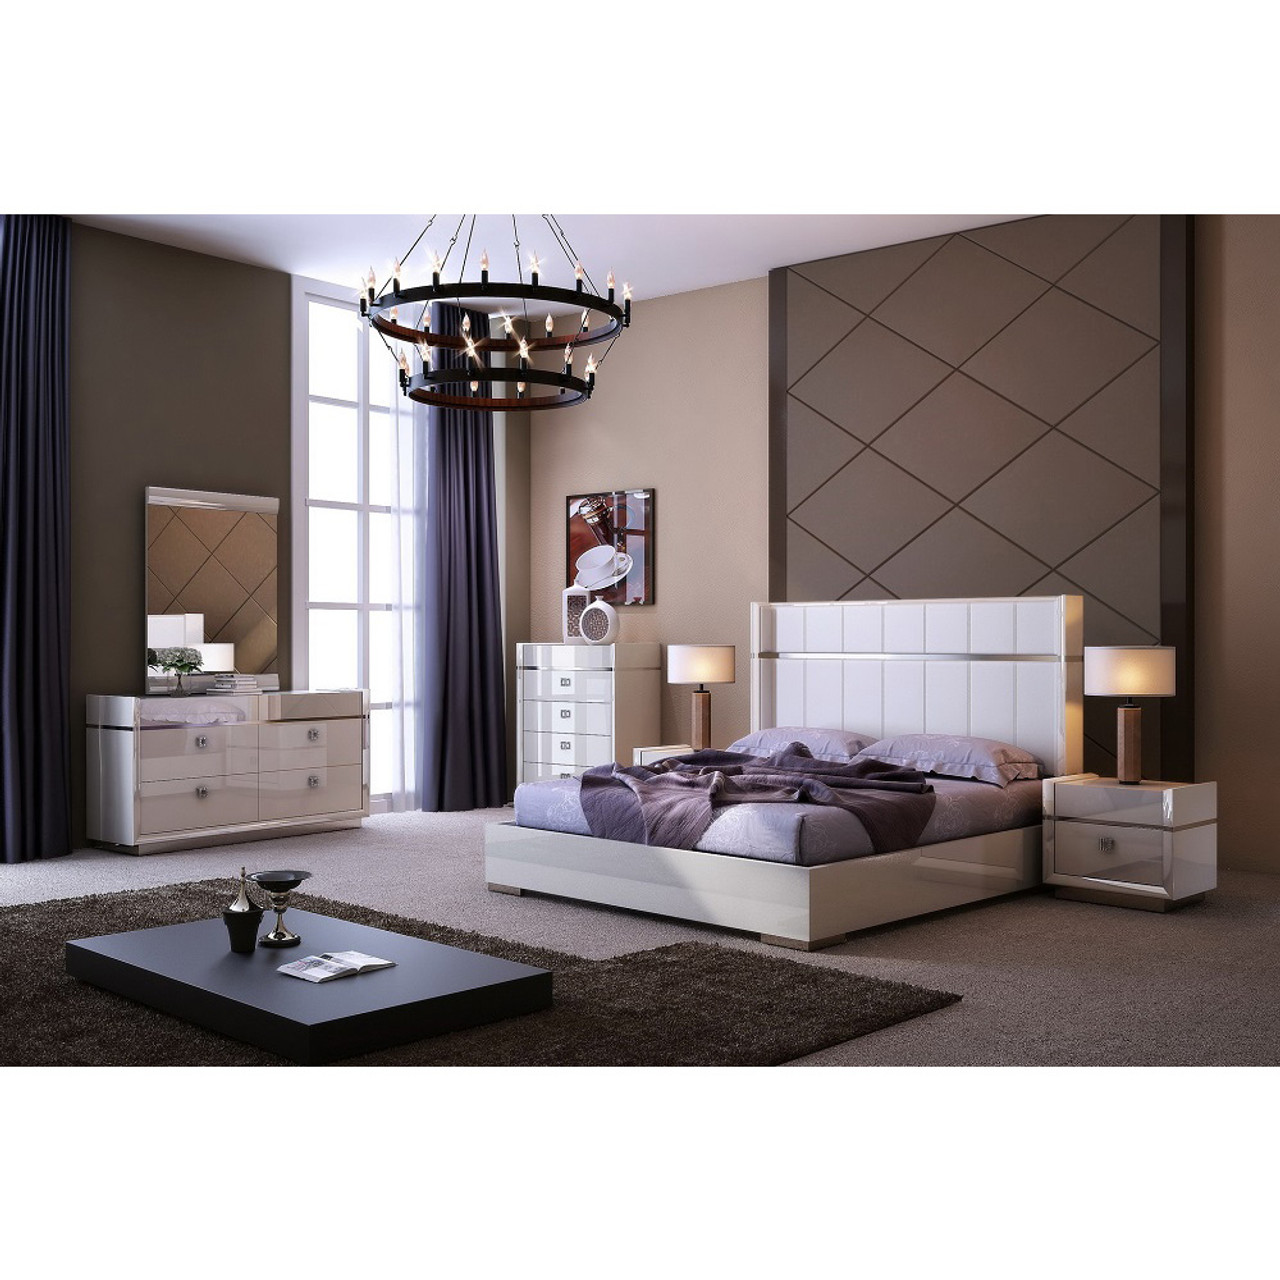 Paris Modern Platform Bedroom Set - Lounge LA